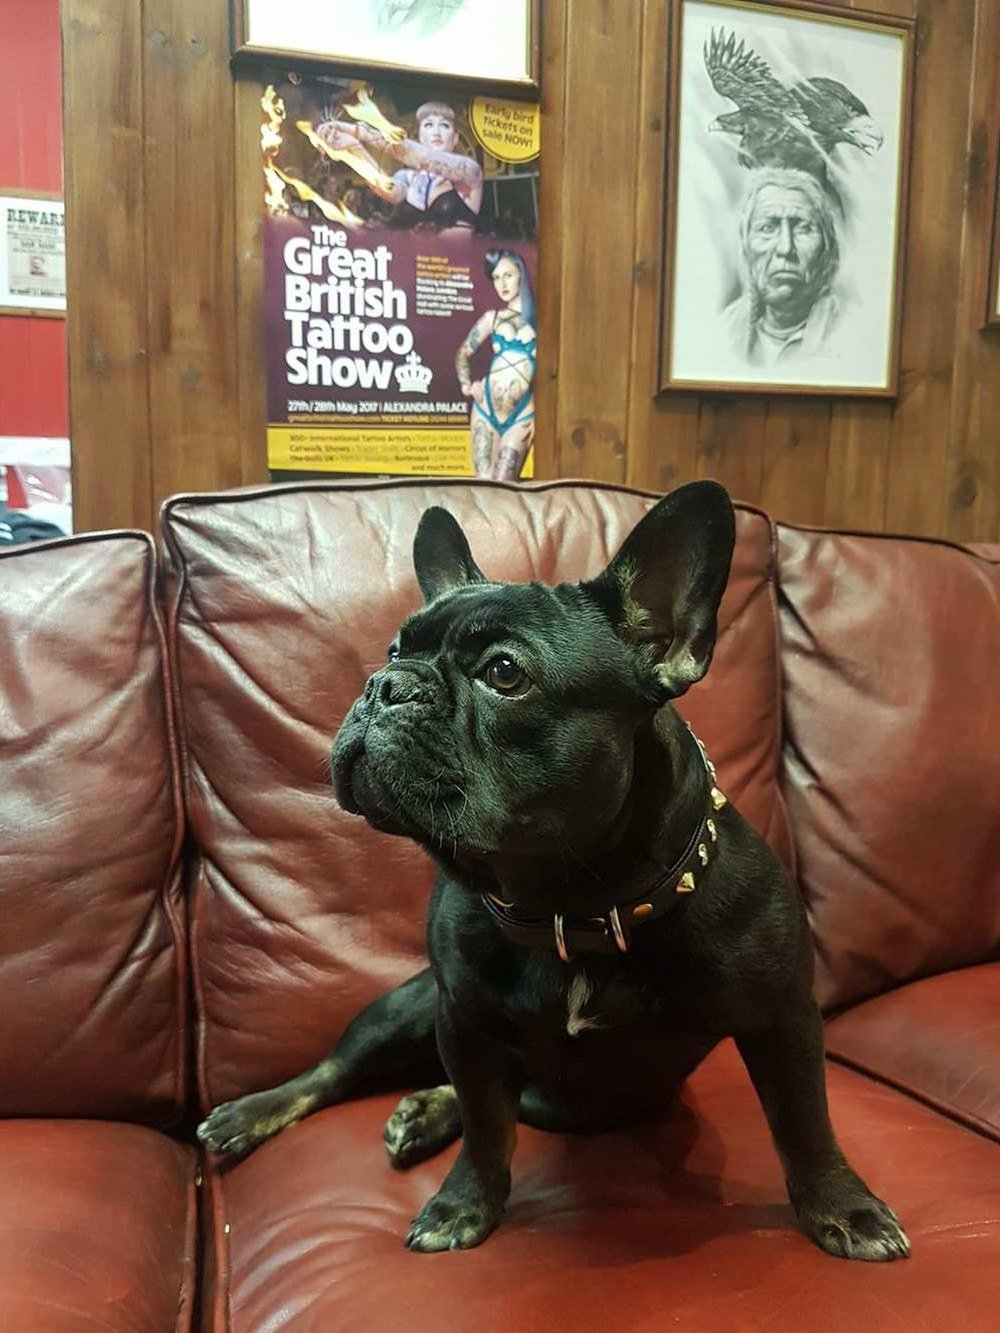 Smoking Guns Tattoo & Piercing Studio (ft. Ham the Frenchie)